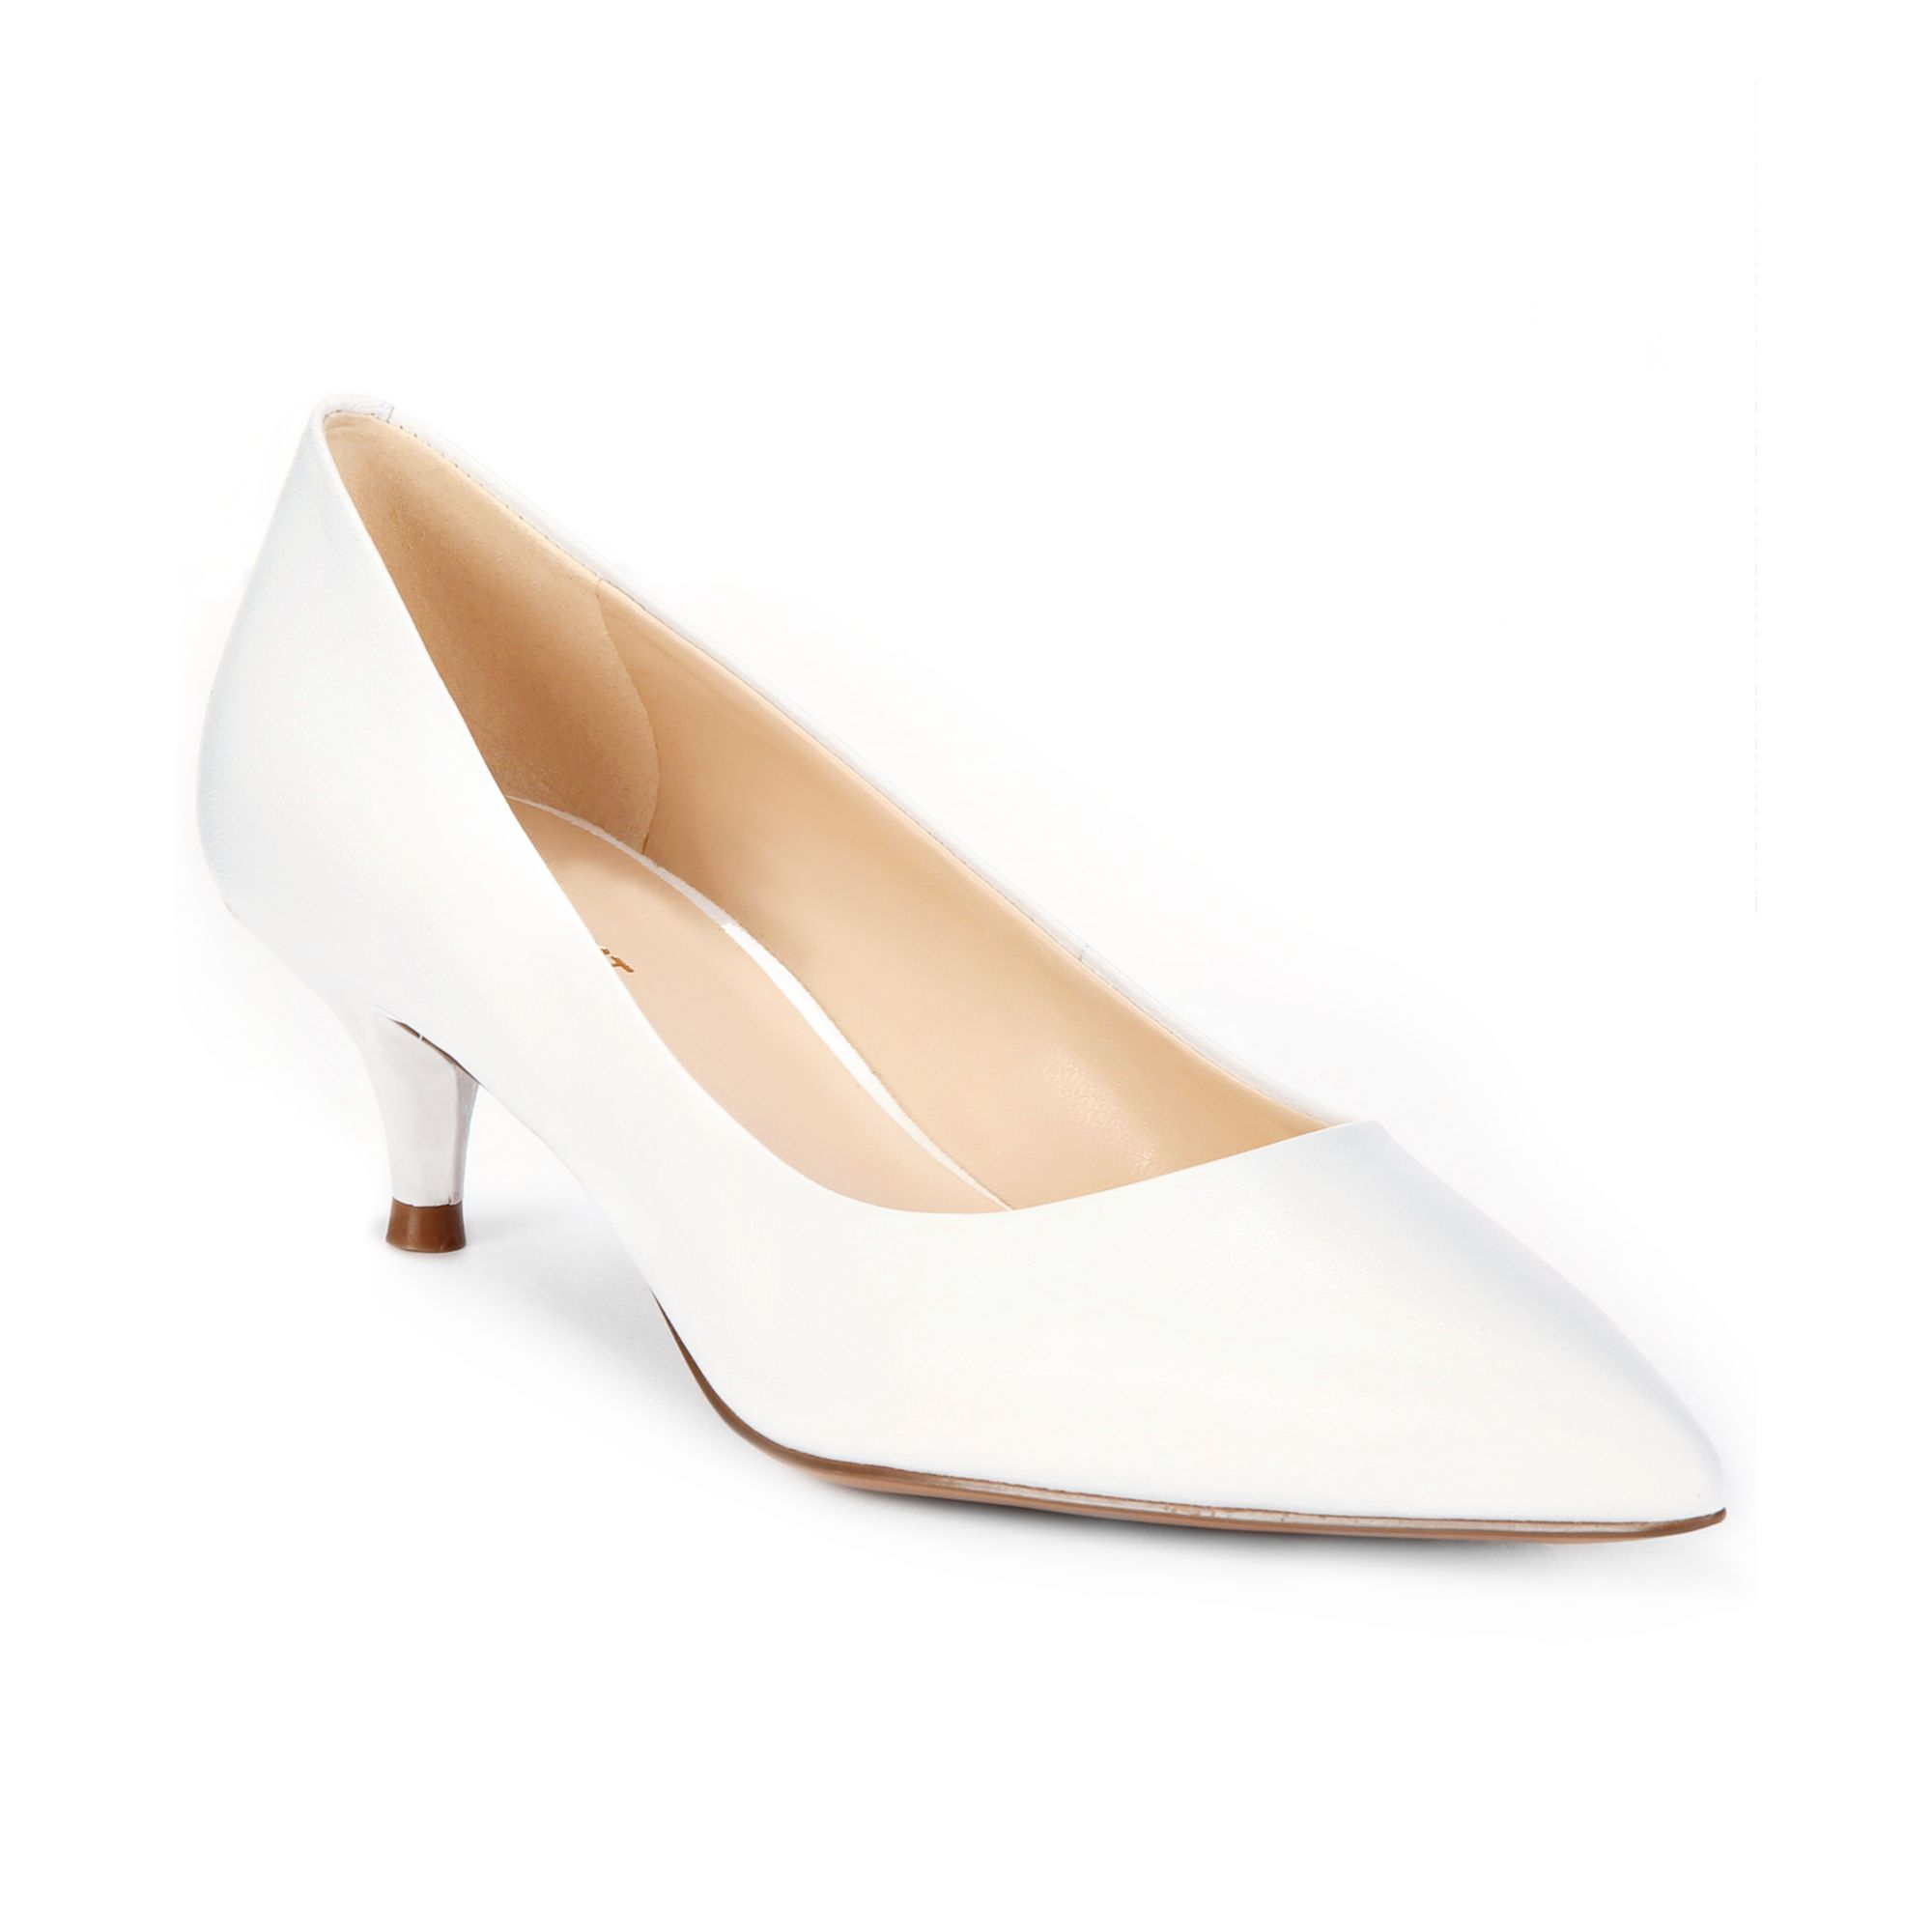 Nine west Illumie Kitten Heel Pumps in White | Lyst